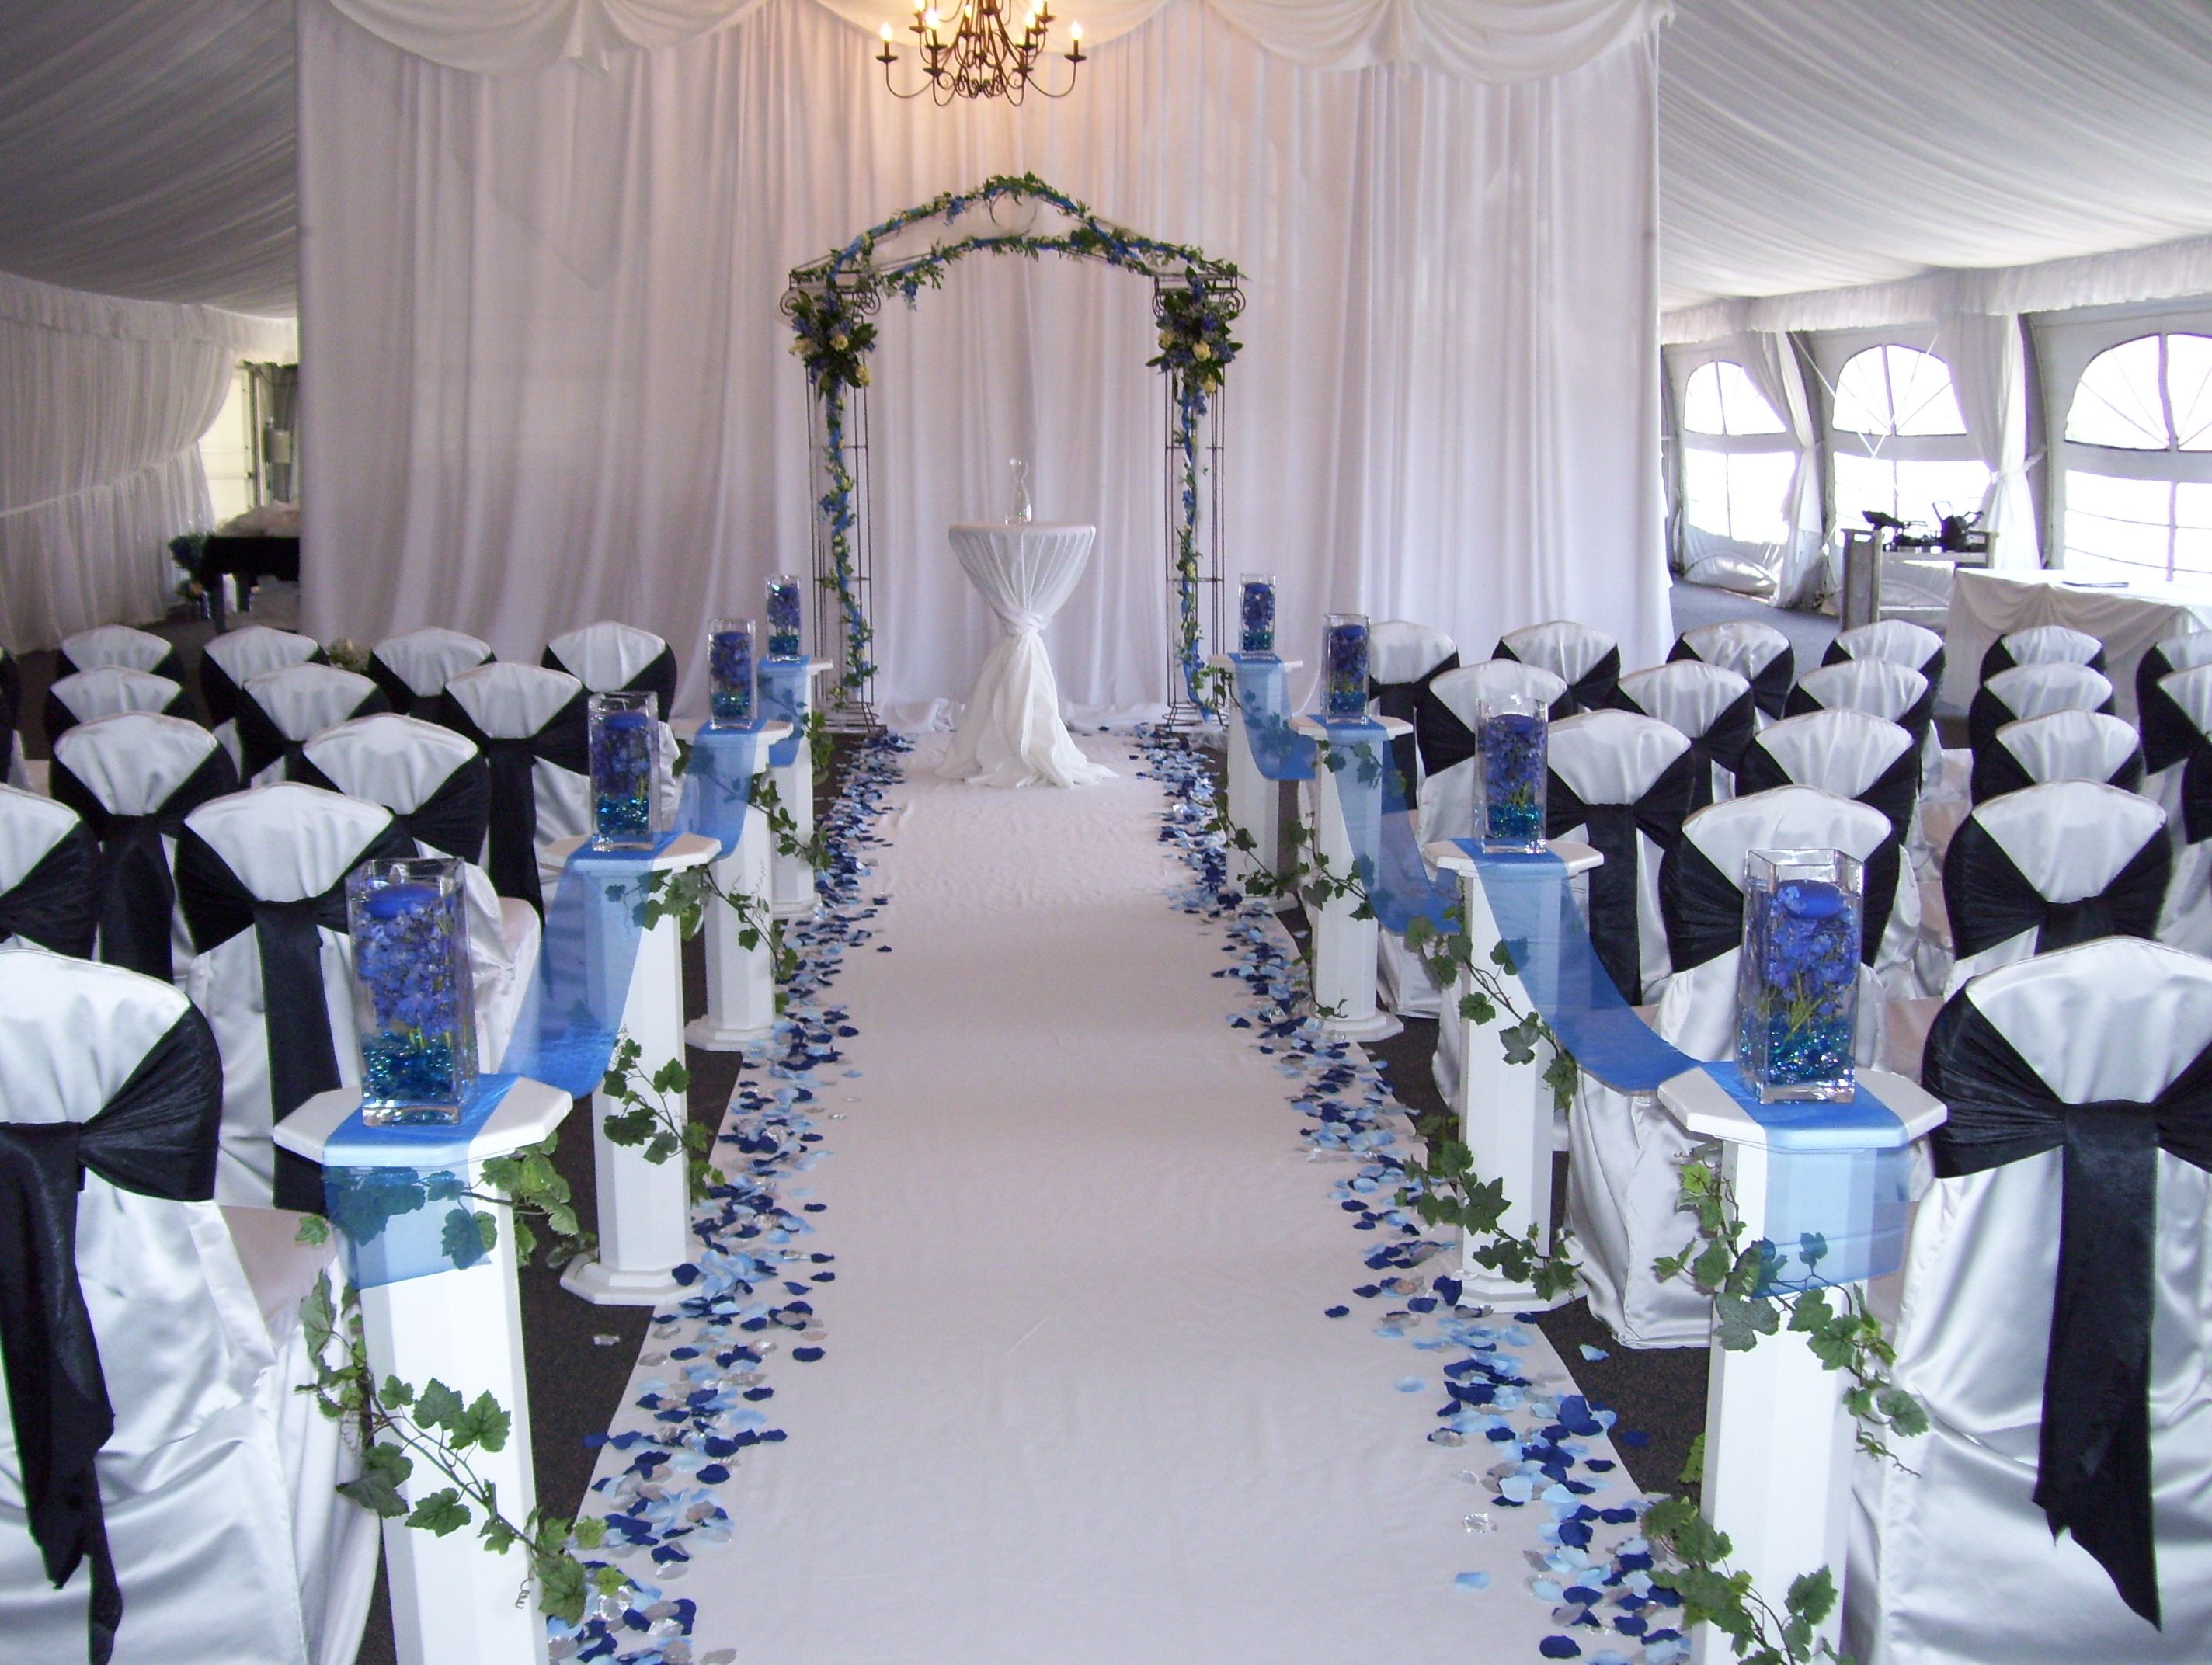 20 romance ideas with silver and blue wedding decorations 20 romance ideas with silver and blue wedding decorations junglespirit Images